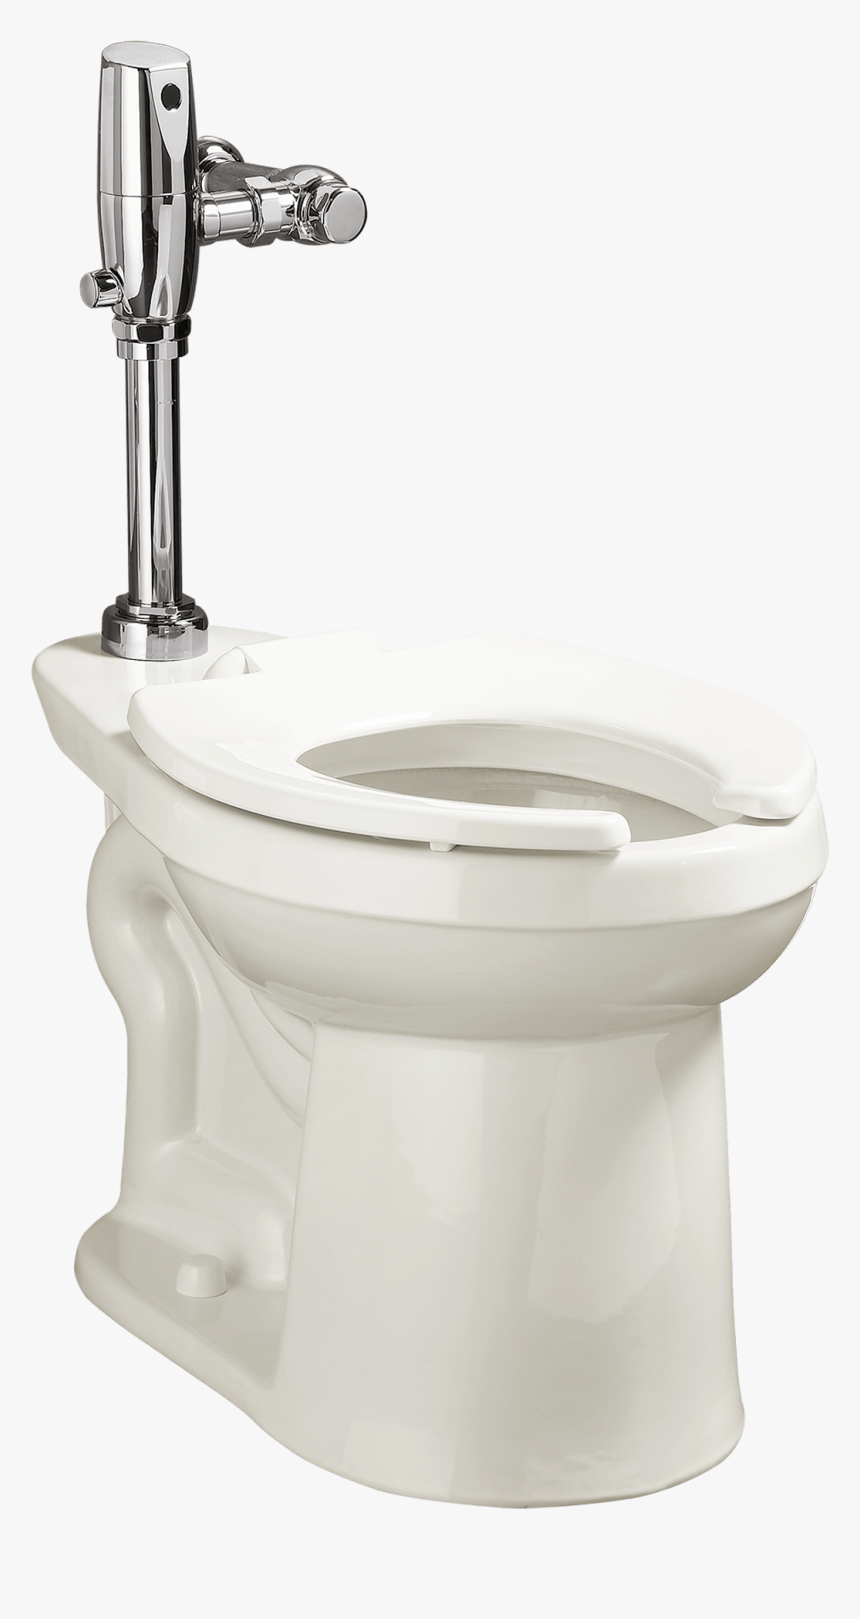 American Toilet - Transparent Toilet Png, Png Download, Free Download